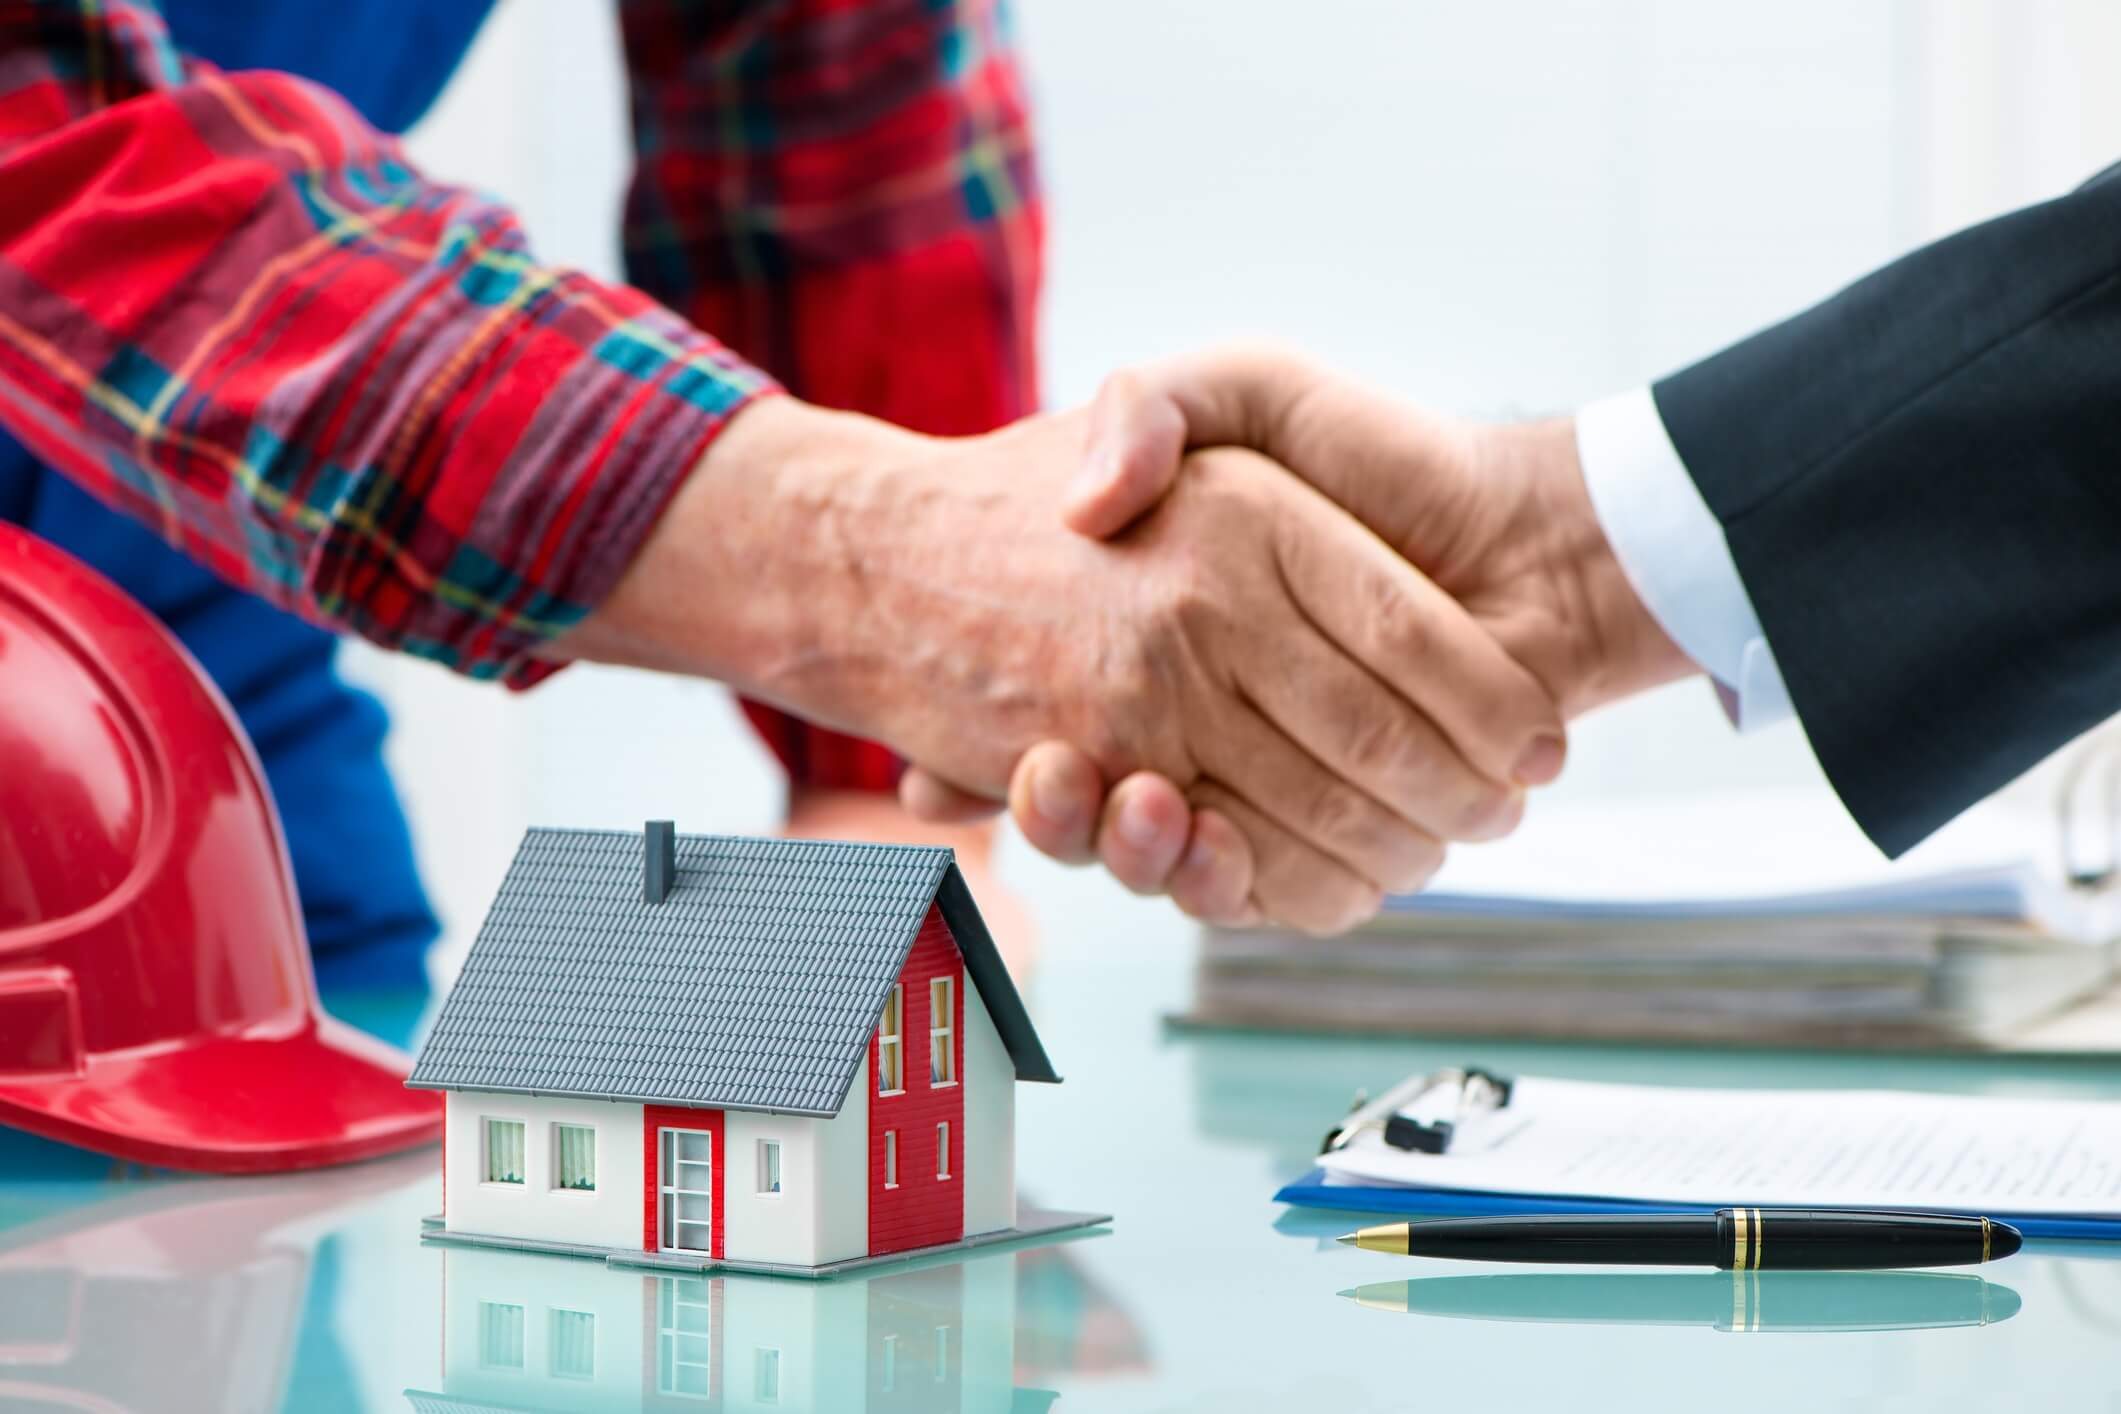 Wholesaler and buyer shaking hands for a property purchase agreement